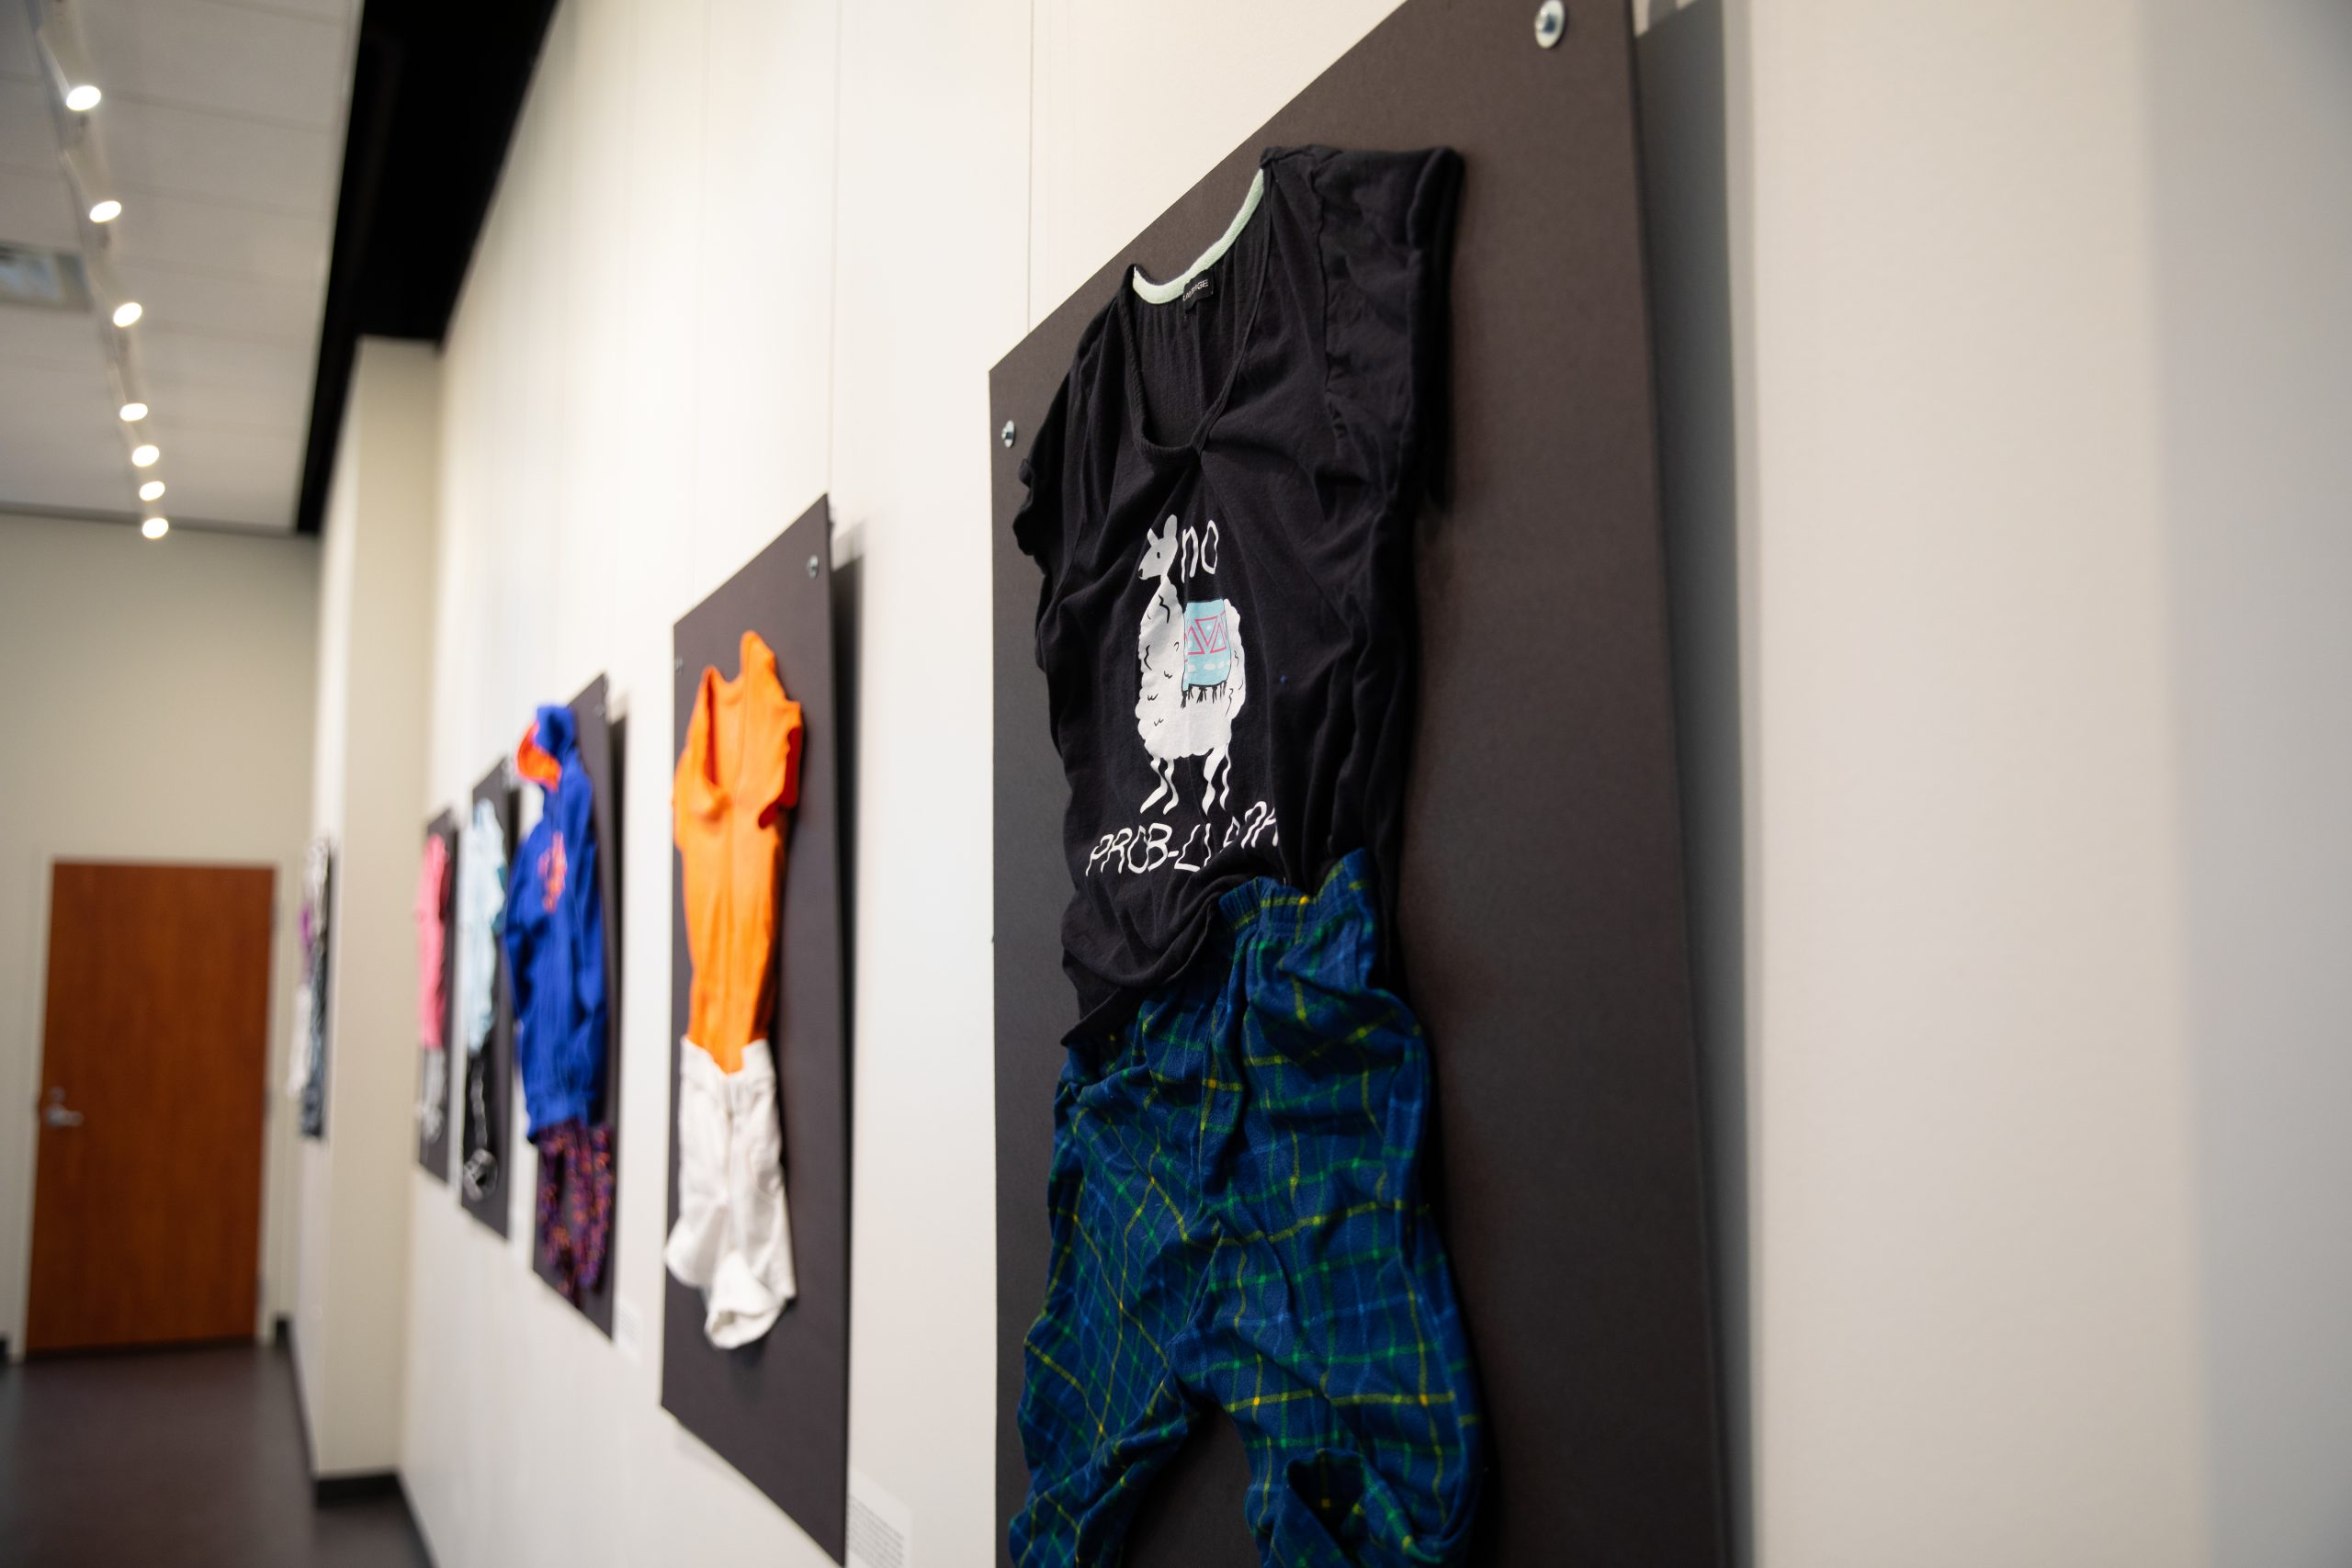 Clothing in an art gallery